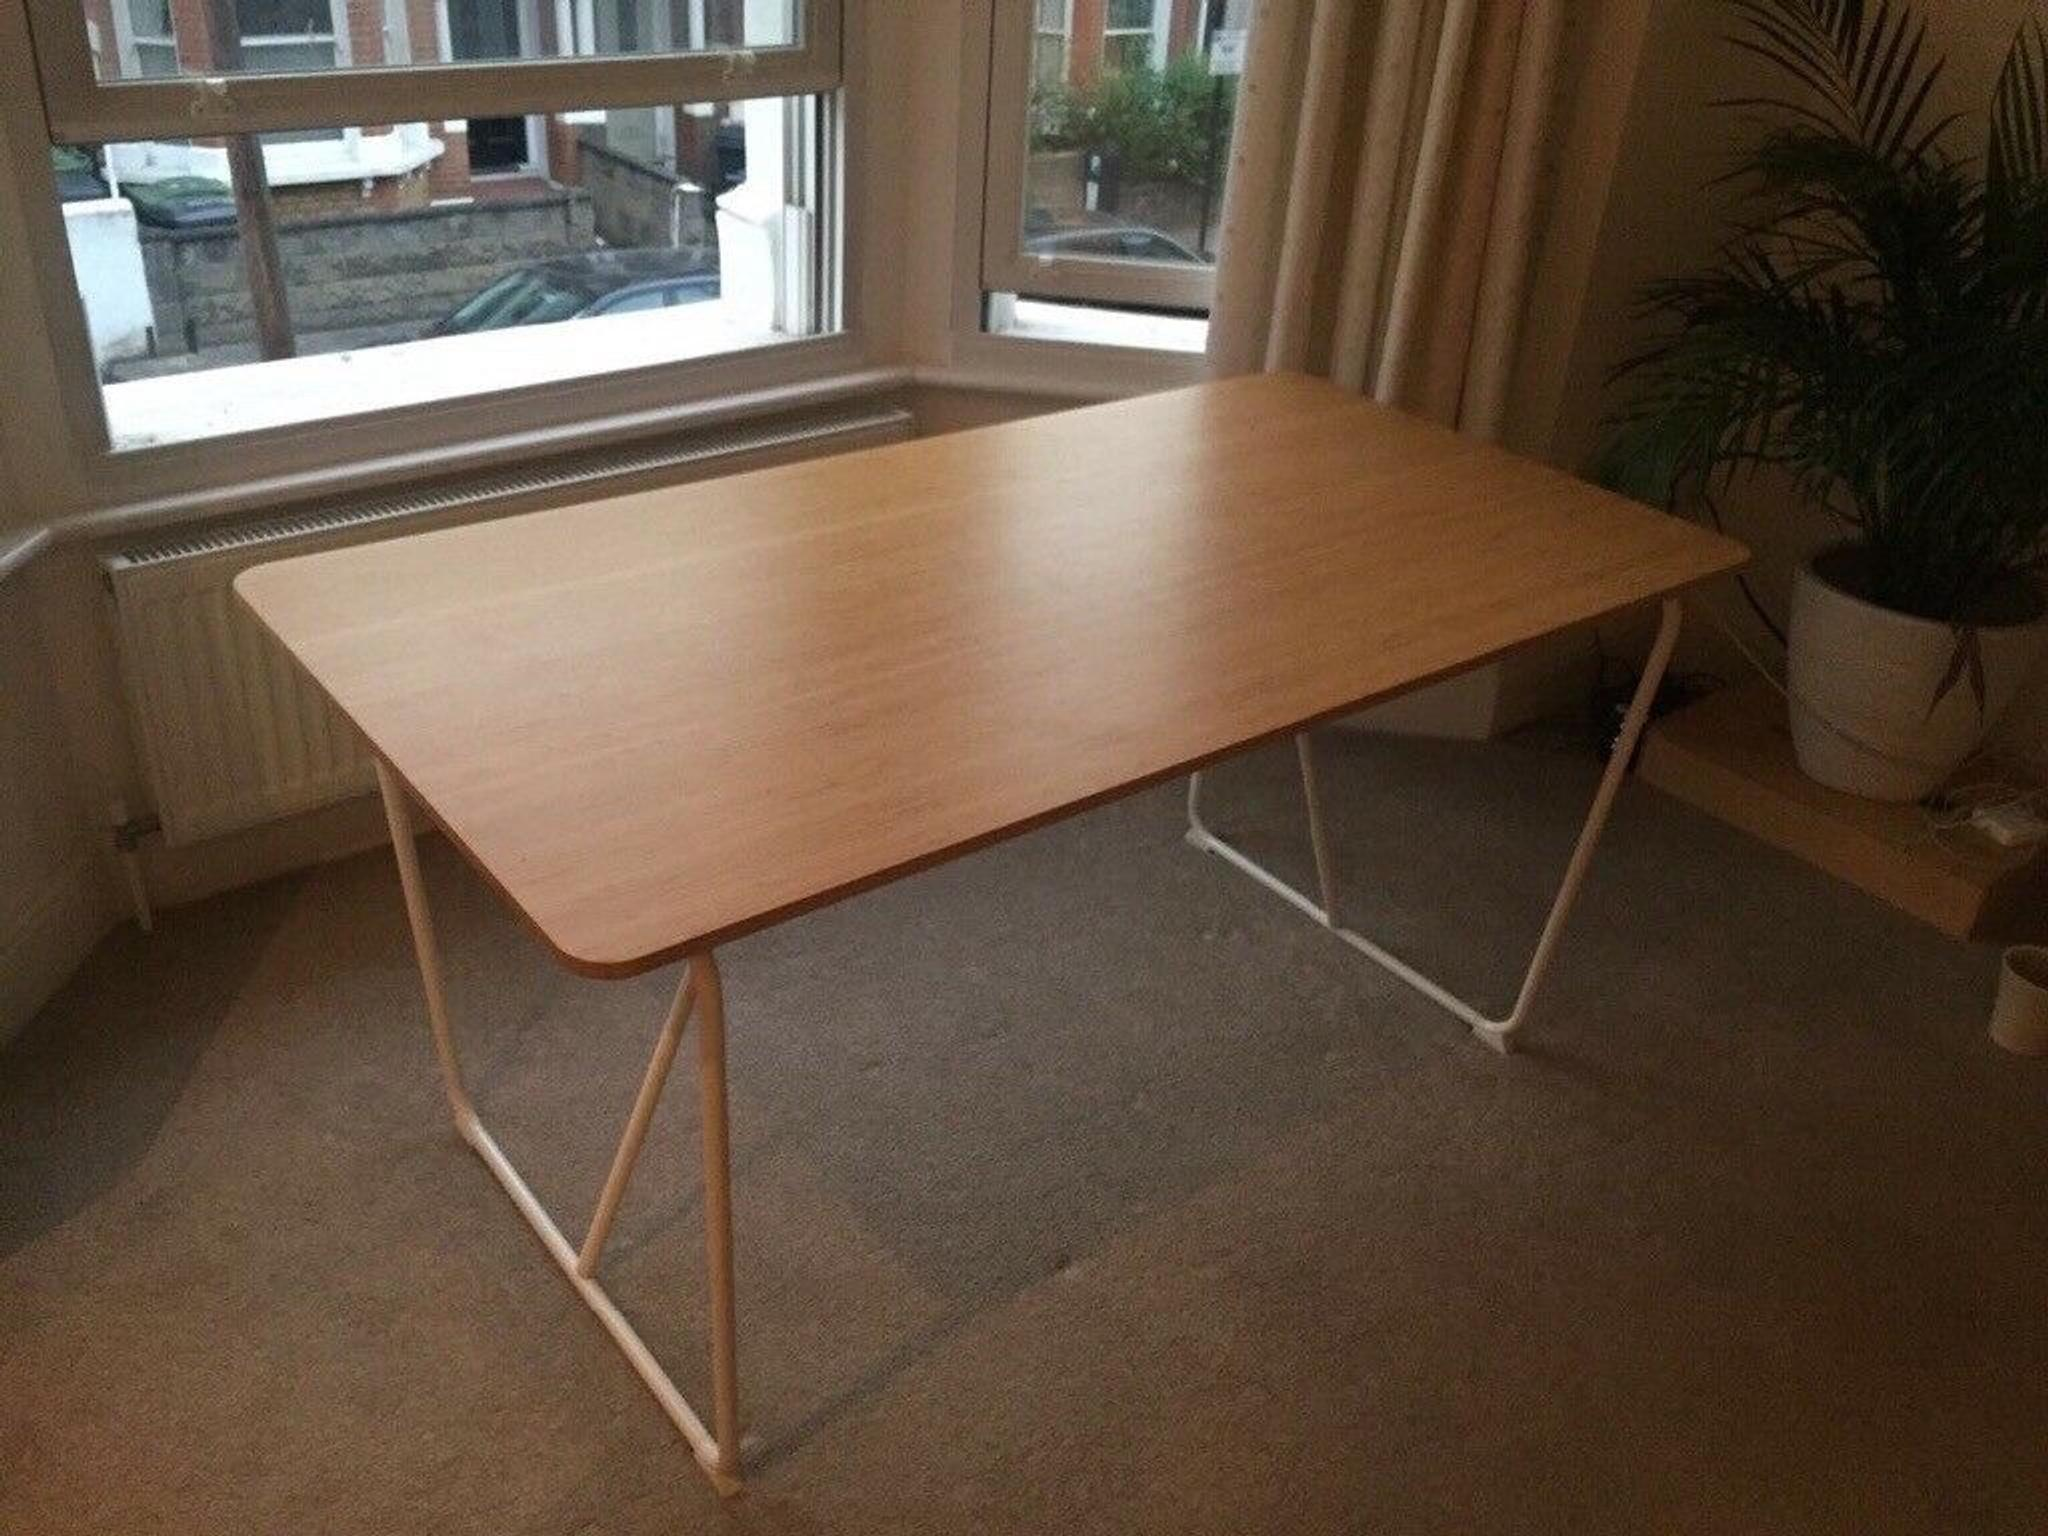 Picture of: Dining Table Bamboo In Sw1w Westminster For 59 00 For Sale Shpock